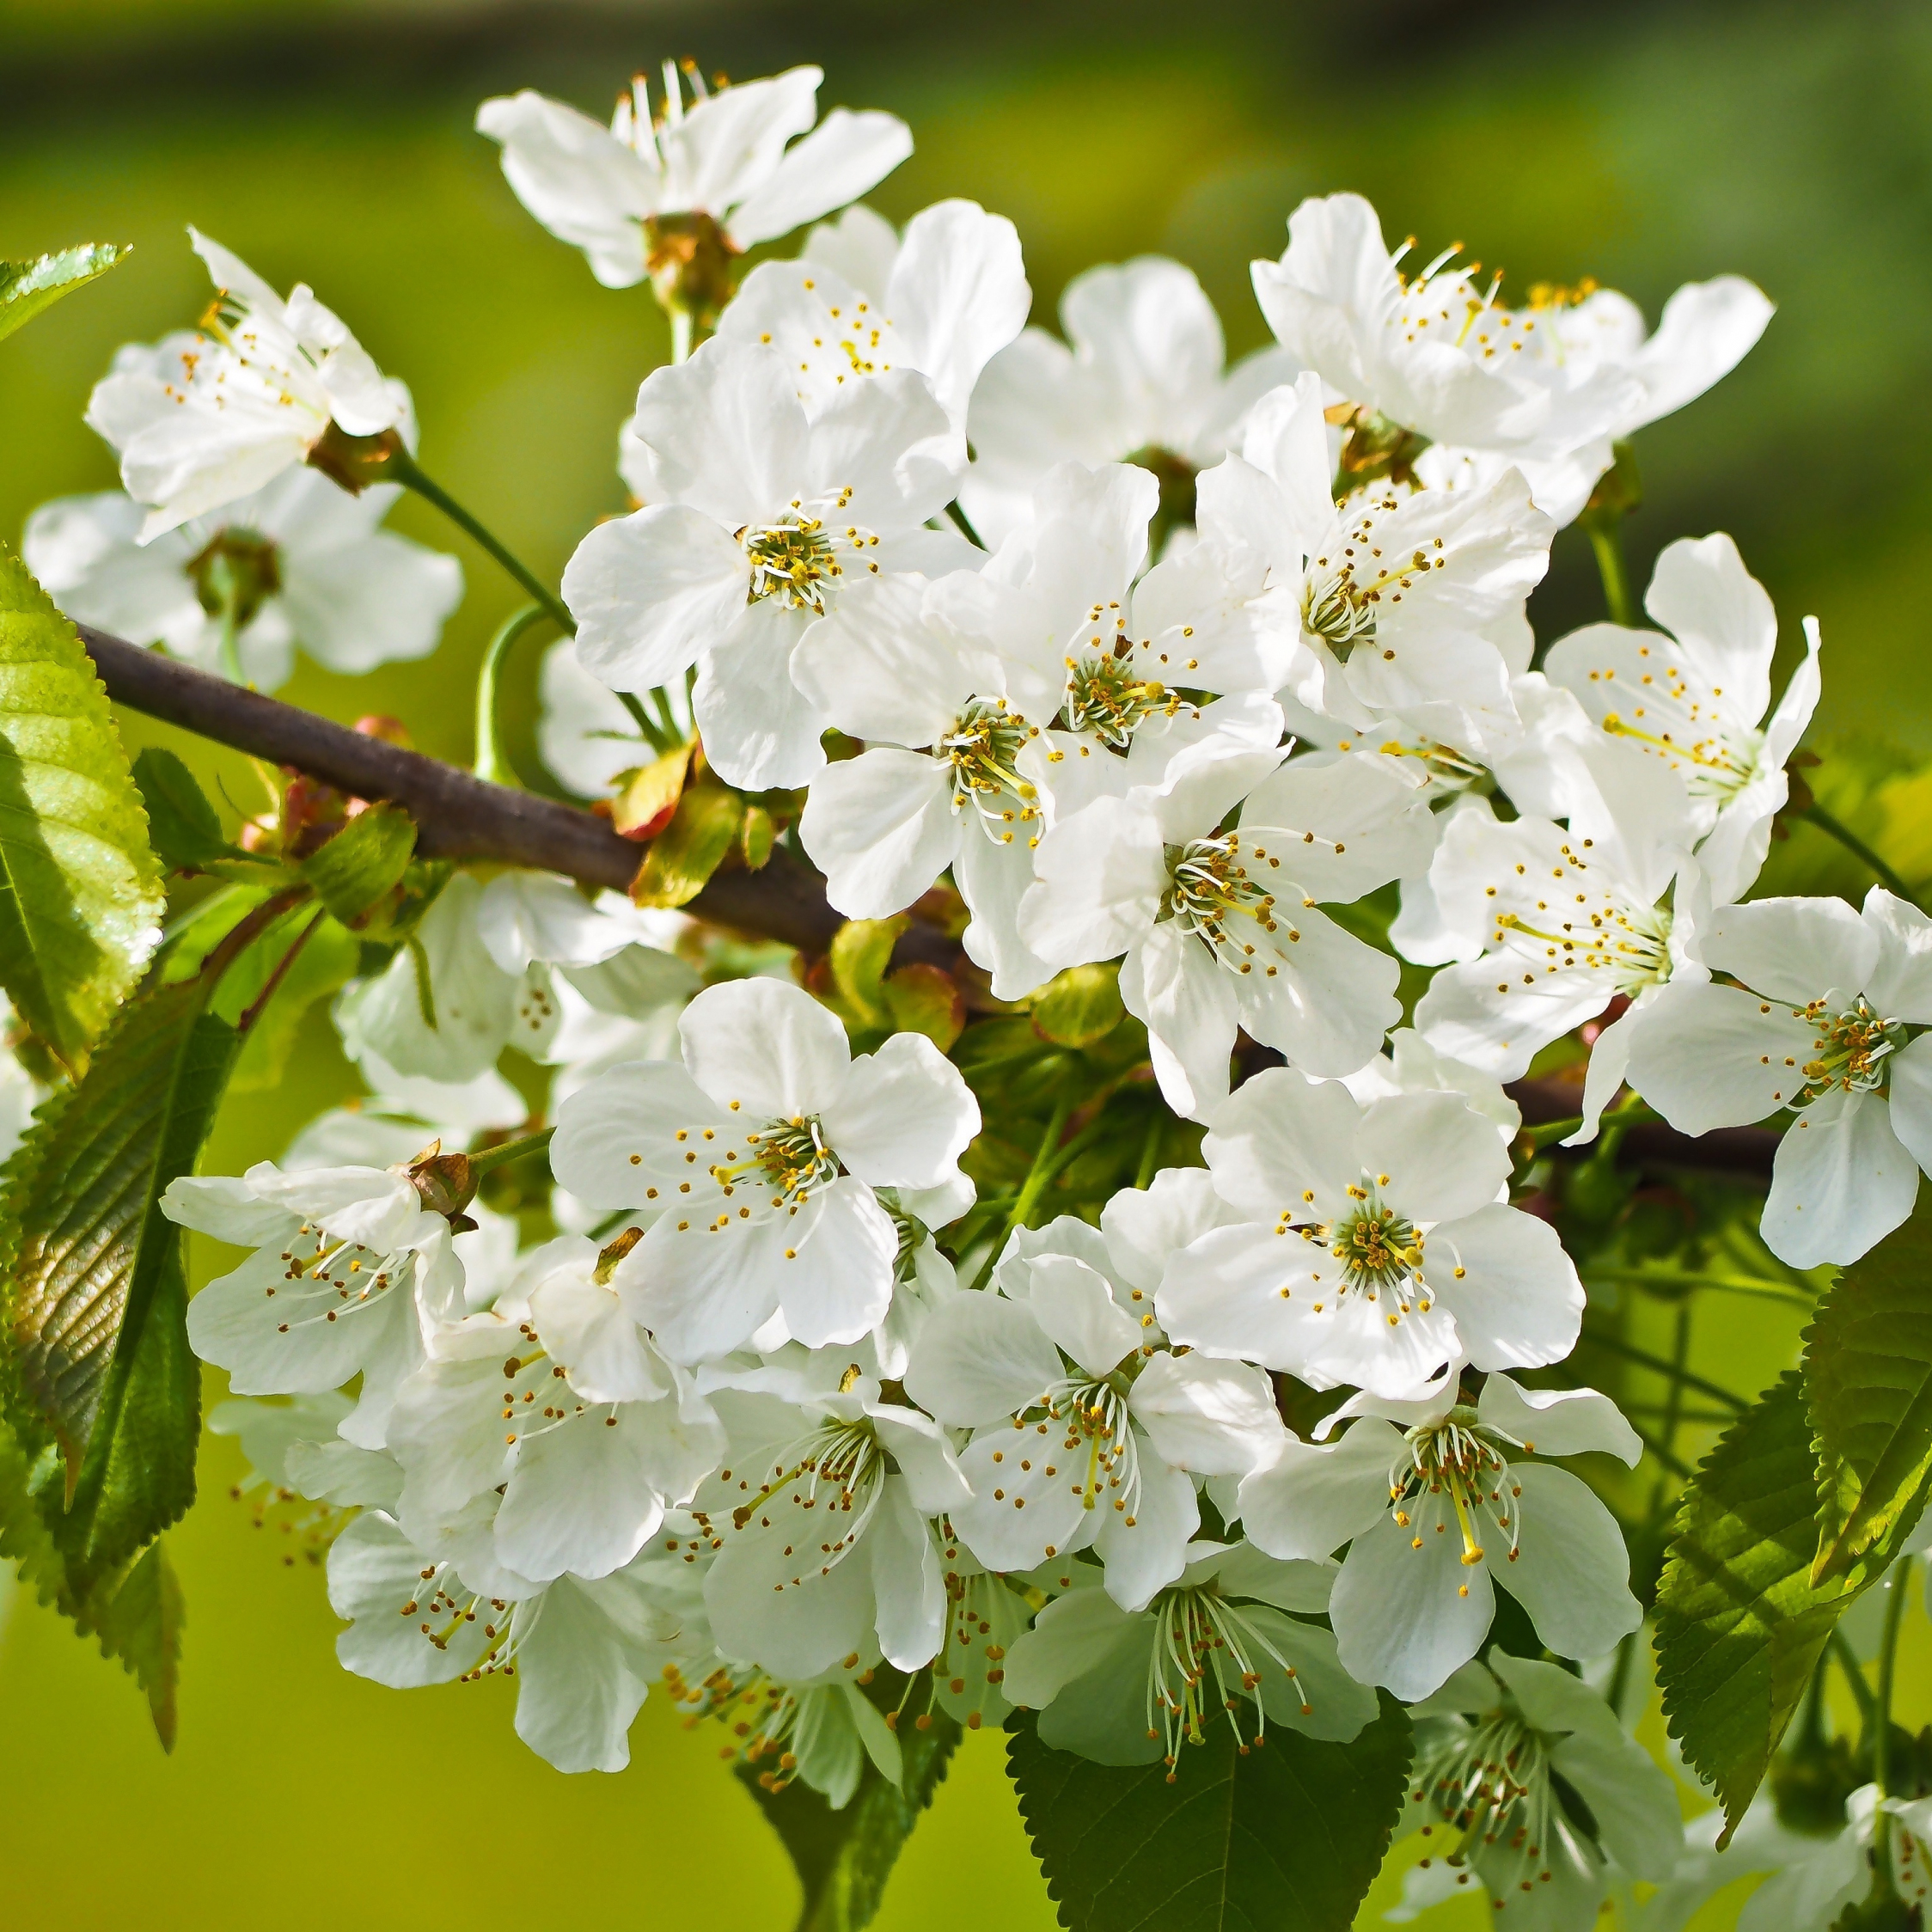 Download 2248x2248 Wallpaper Tree Branches Blossom White Flowers